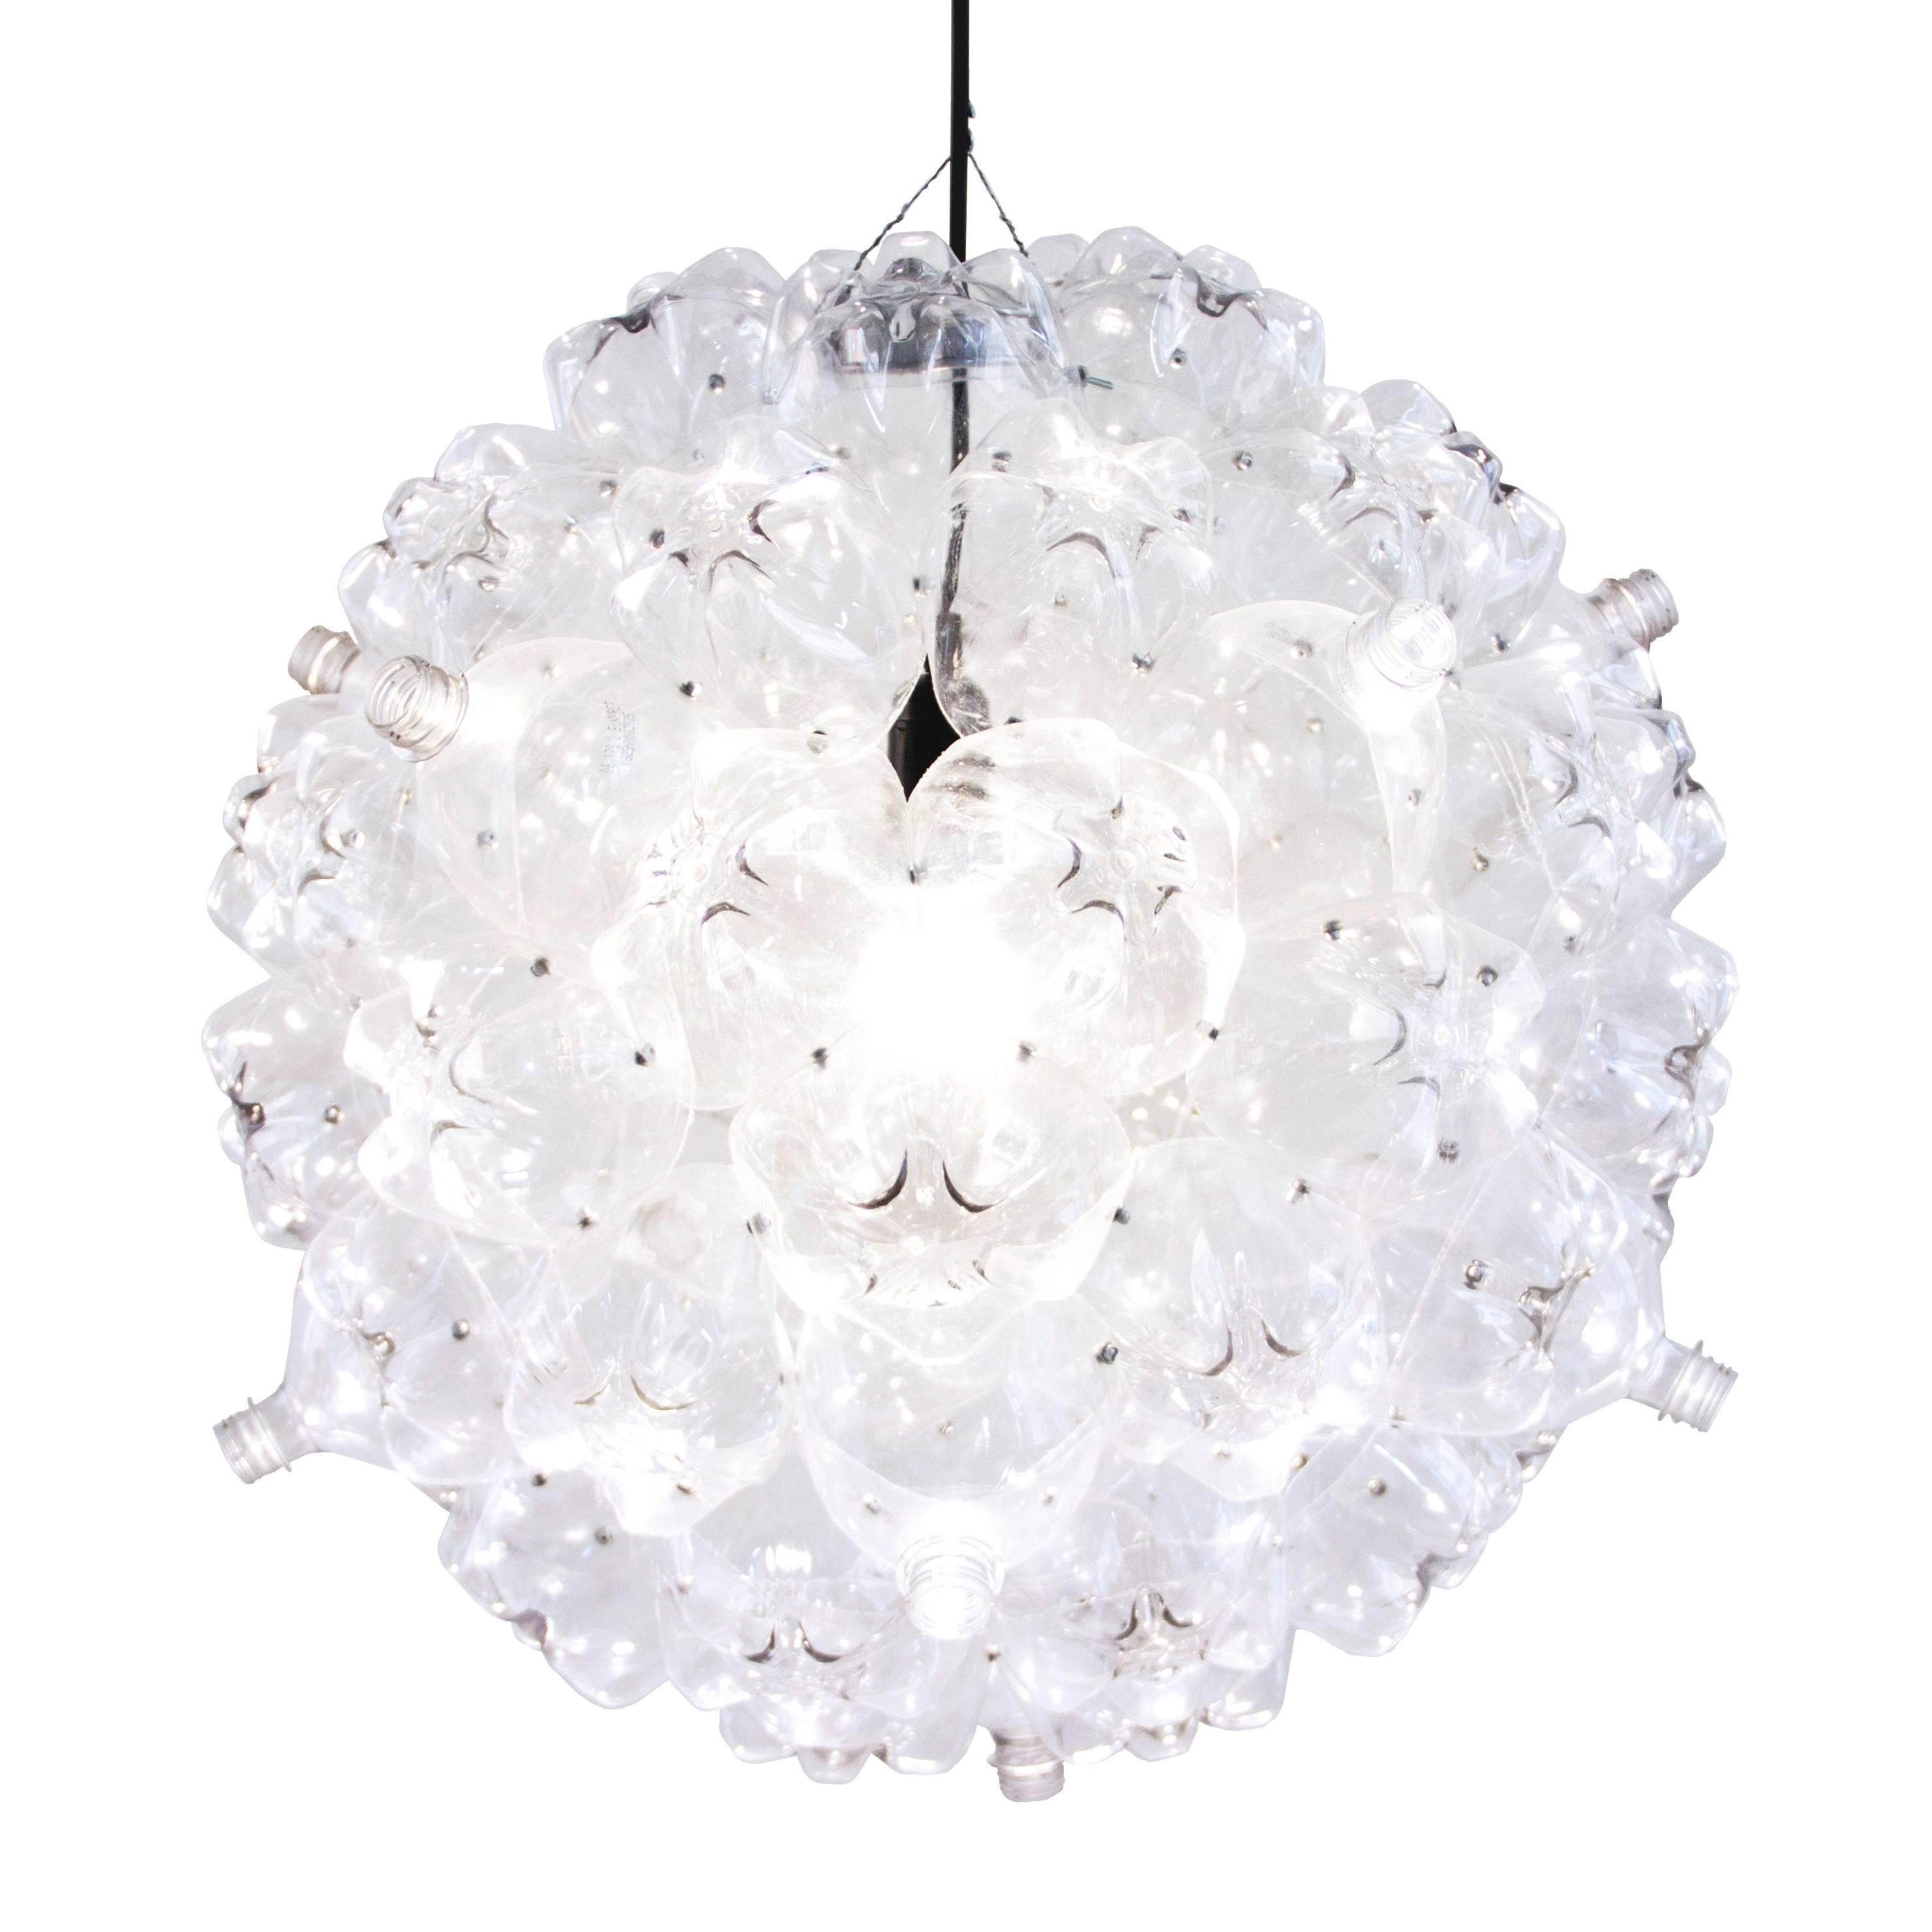 Clear bubble chandelier from souda modern pendant made from clear bubble chandelier from souda modern pendant made from recycled bottles at 1stdibs arubaitofo Image collections